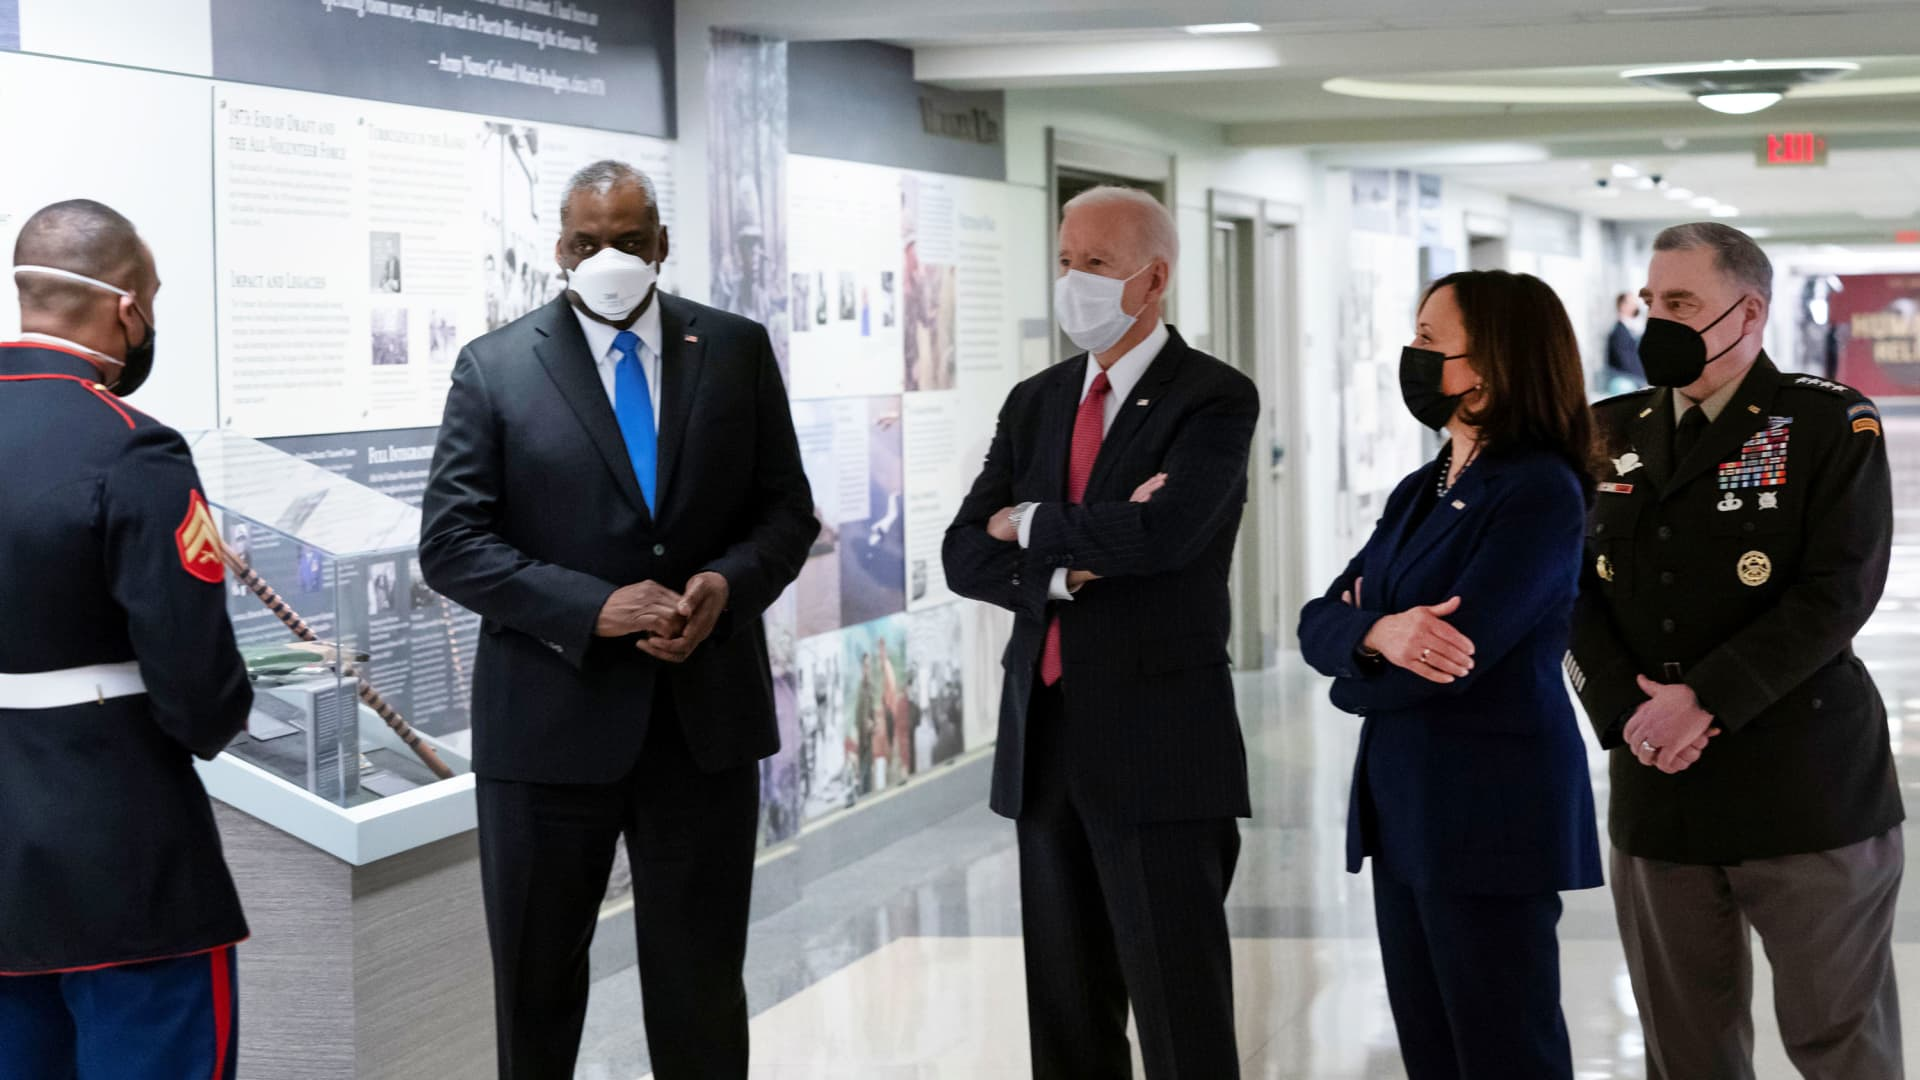 U.S. President Joe Biden, accompanied by Vice President Kamala Harris, Secretary of Defense Lloyd Austin, and Joint Chiefs of Staff Chairman Gen. Mark Milley, tours the African Americans in Defense of our Nations Corridor at the Pentagon in Arlington, Virginia, February 10, 2021.